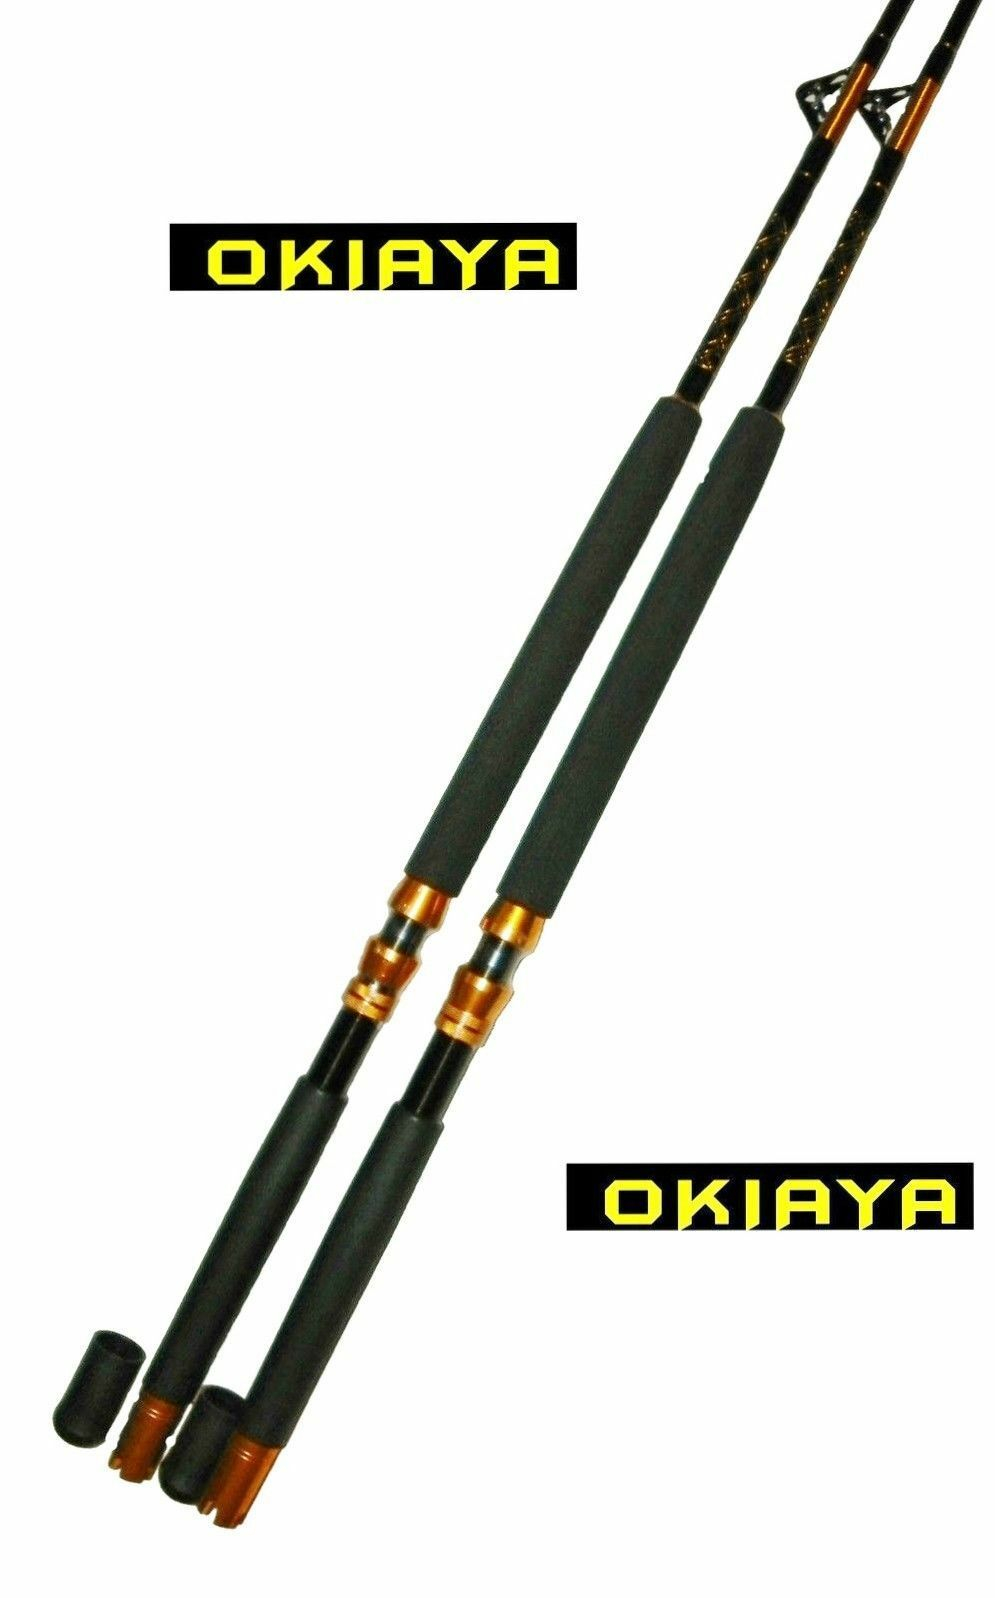 OKIAYA COMPOSIT 160-200LB  THE BIG NASTY  SALTWATER BIG GAME ROLLER ROD SET OF 2